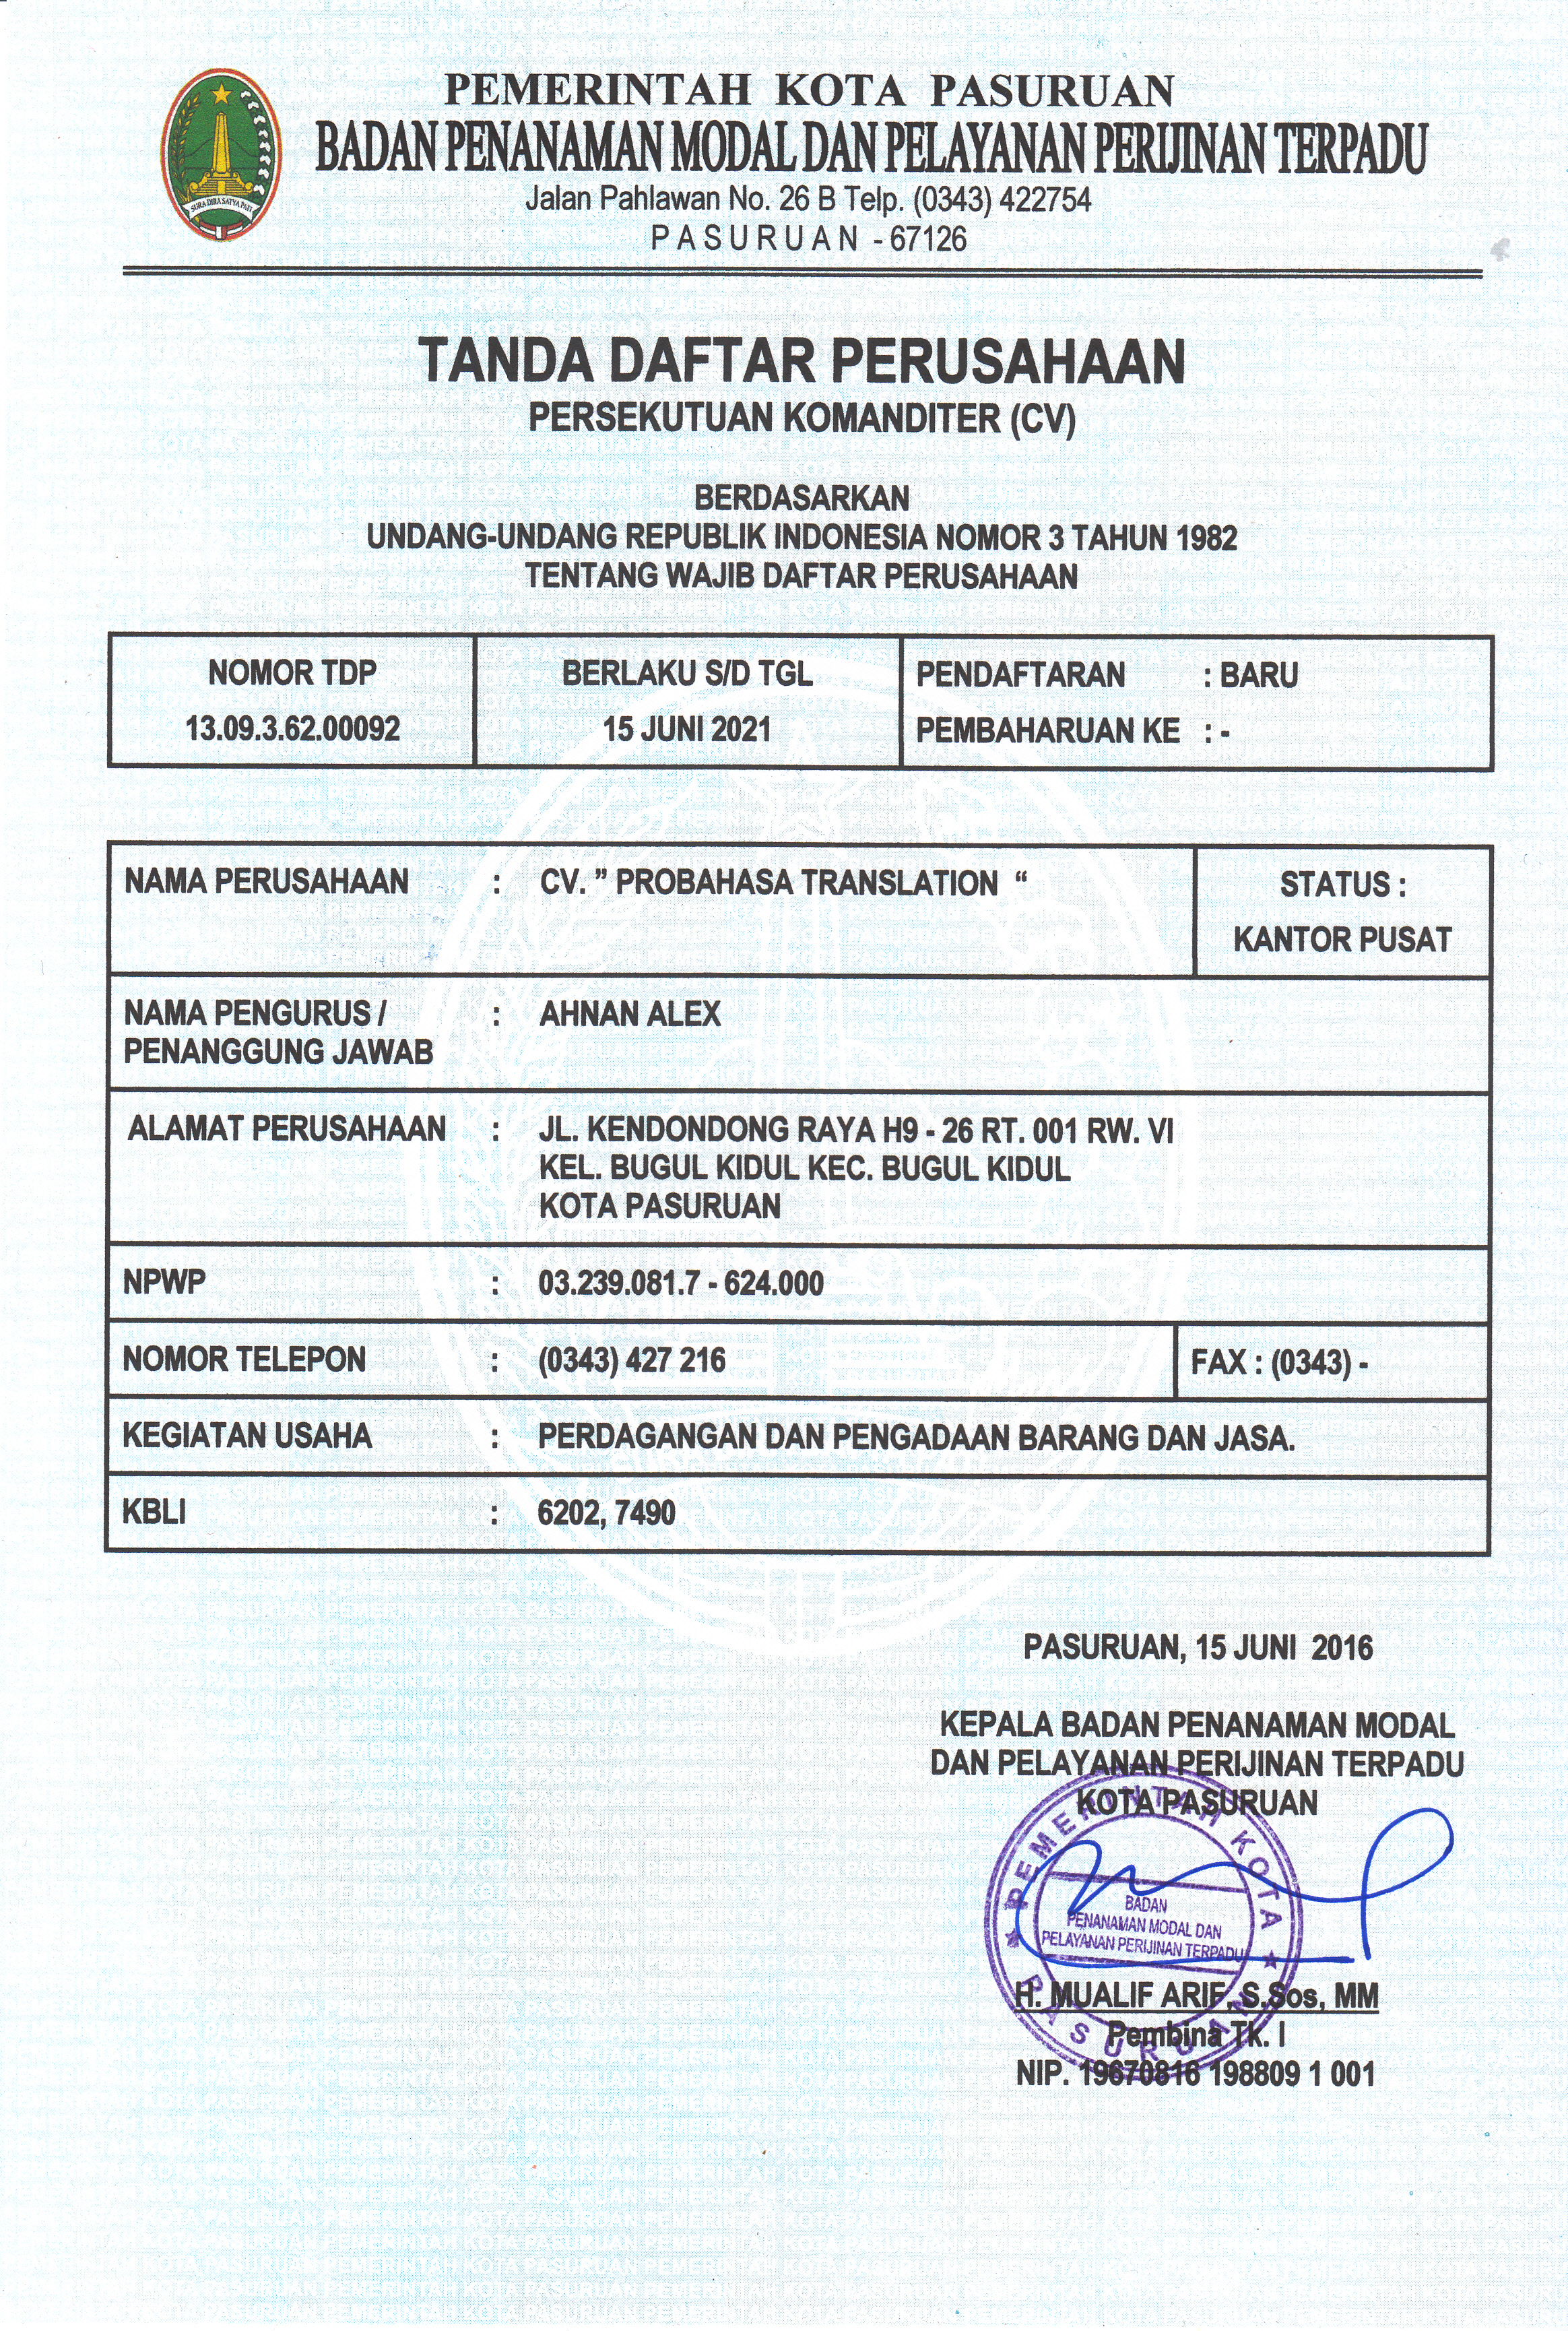 ProBahasa Translation Company Register Number